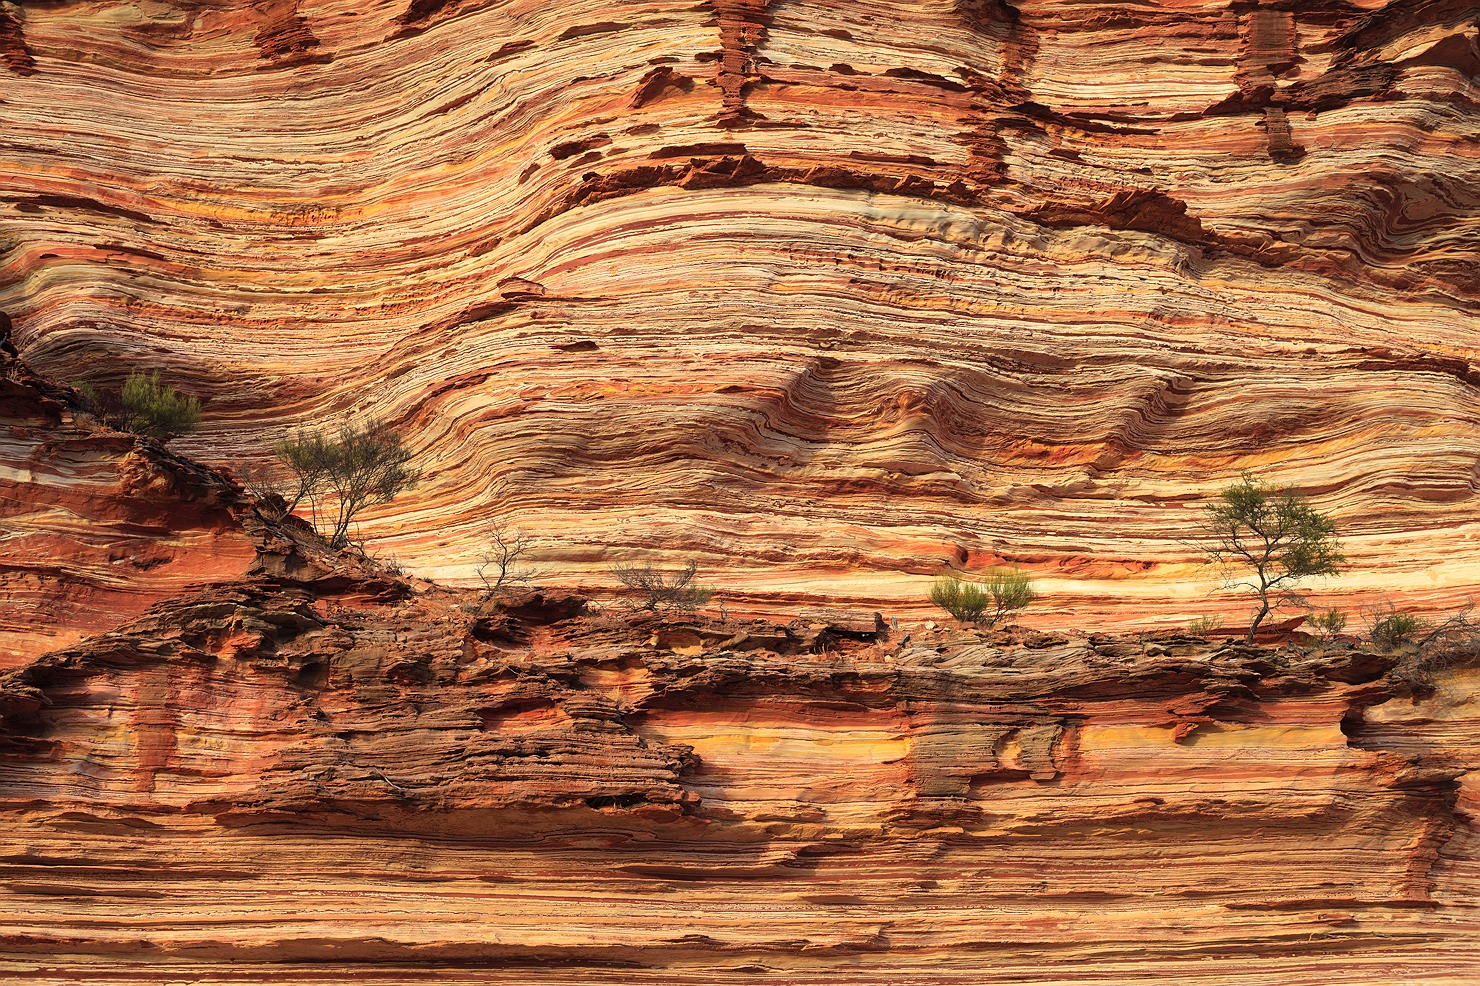 10_kalbarri_national_park